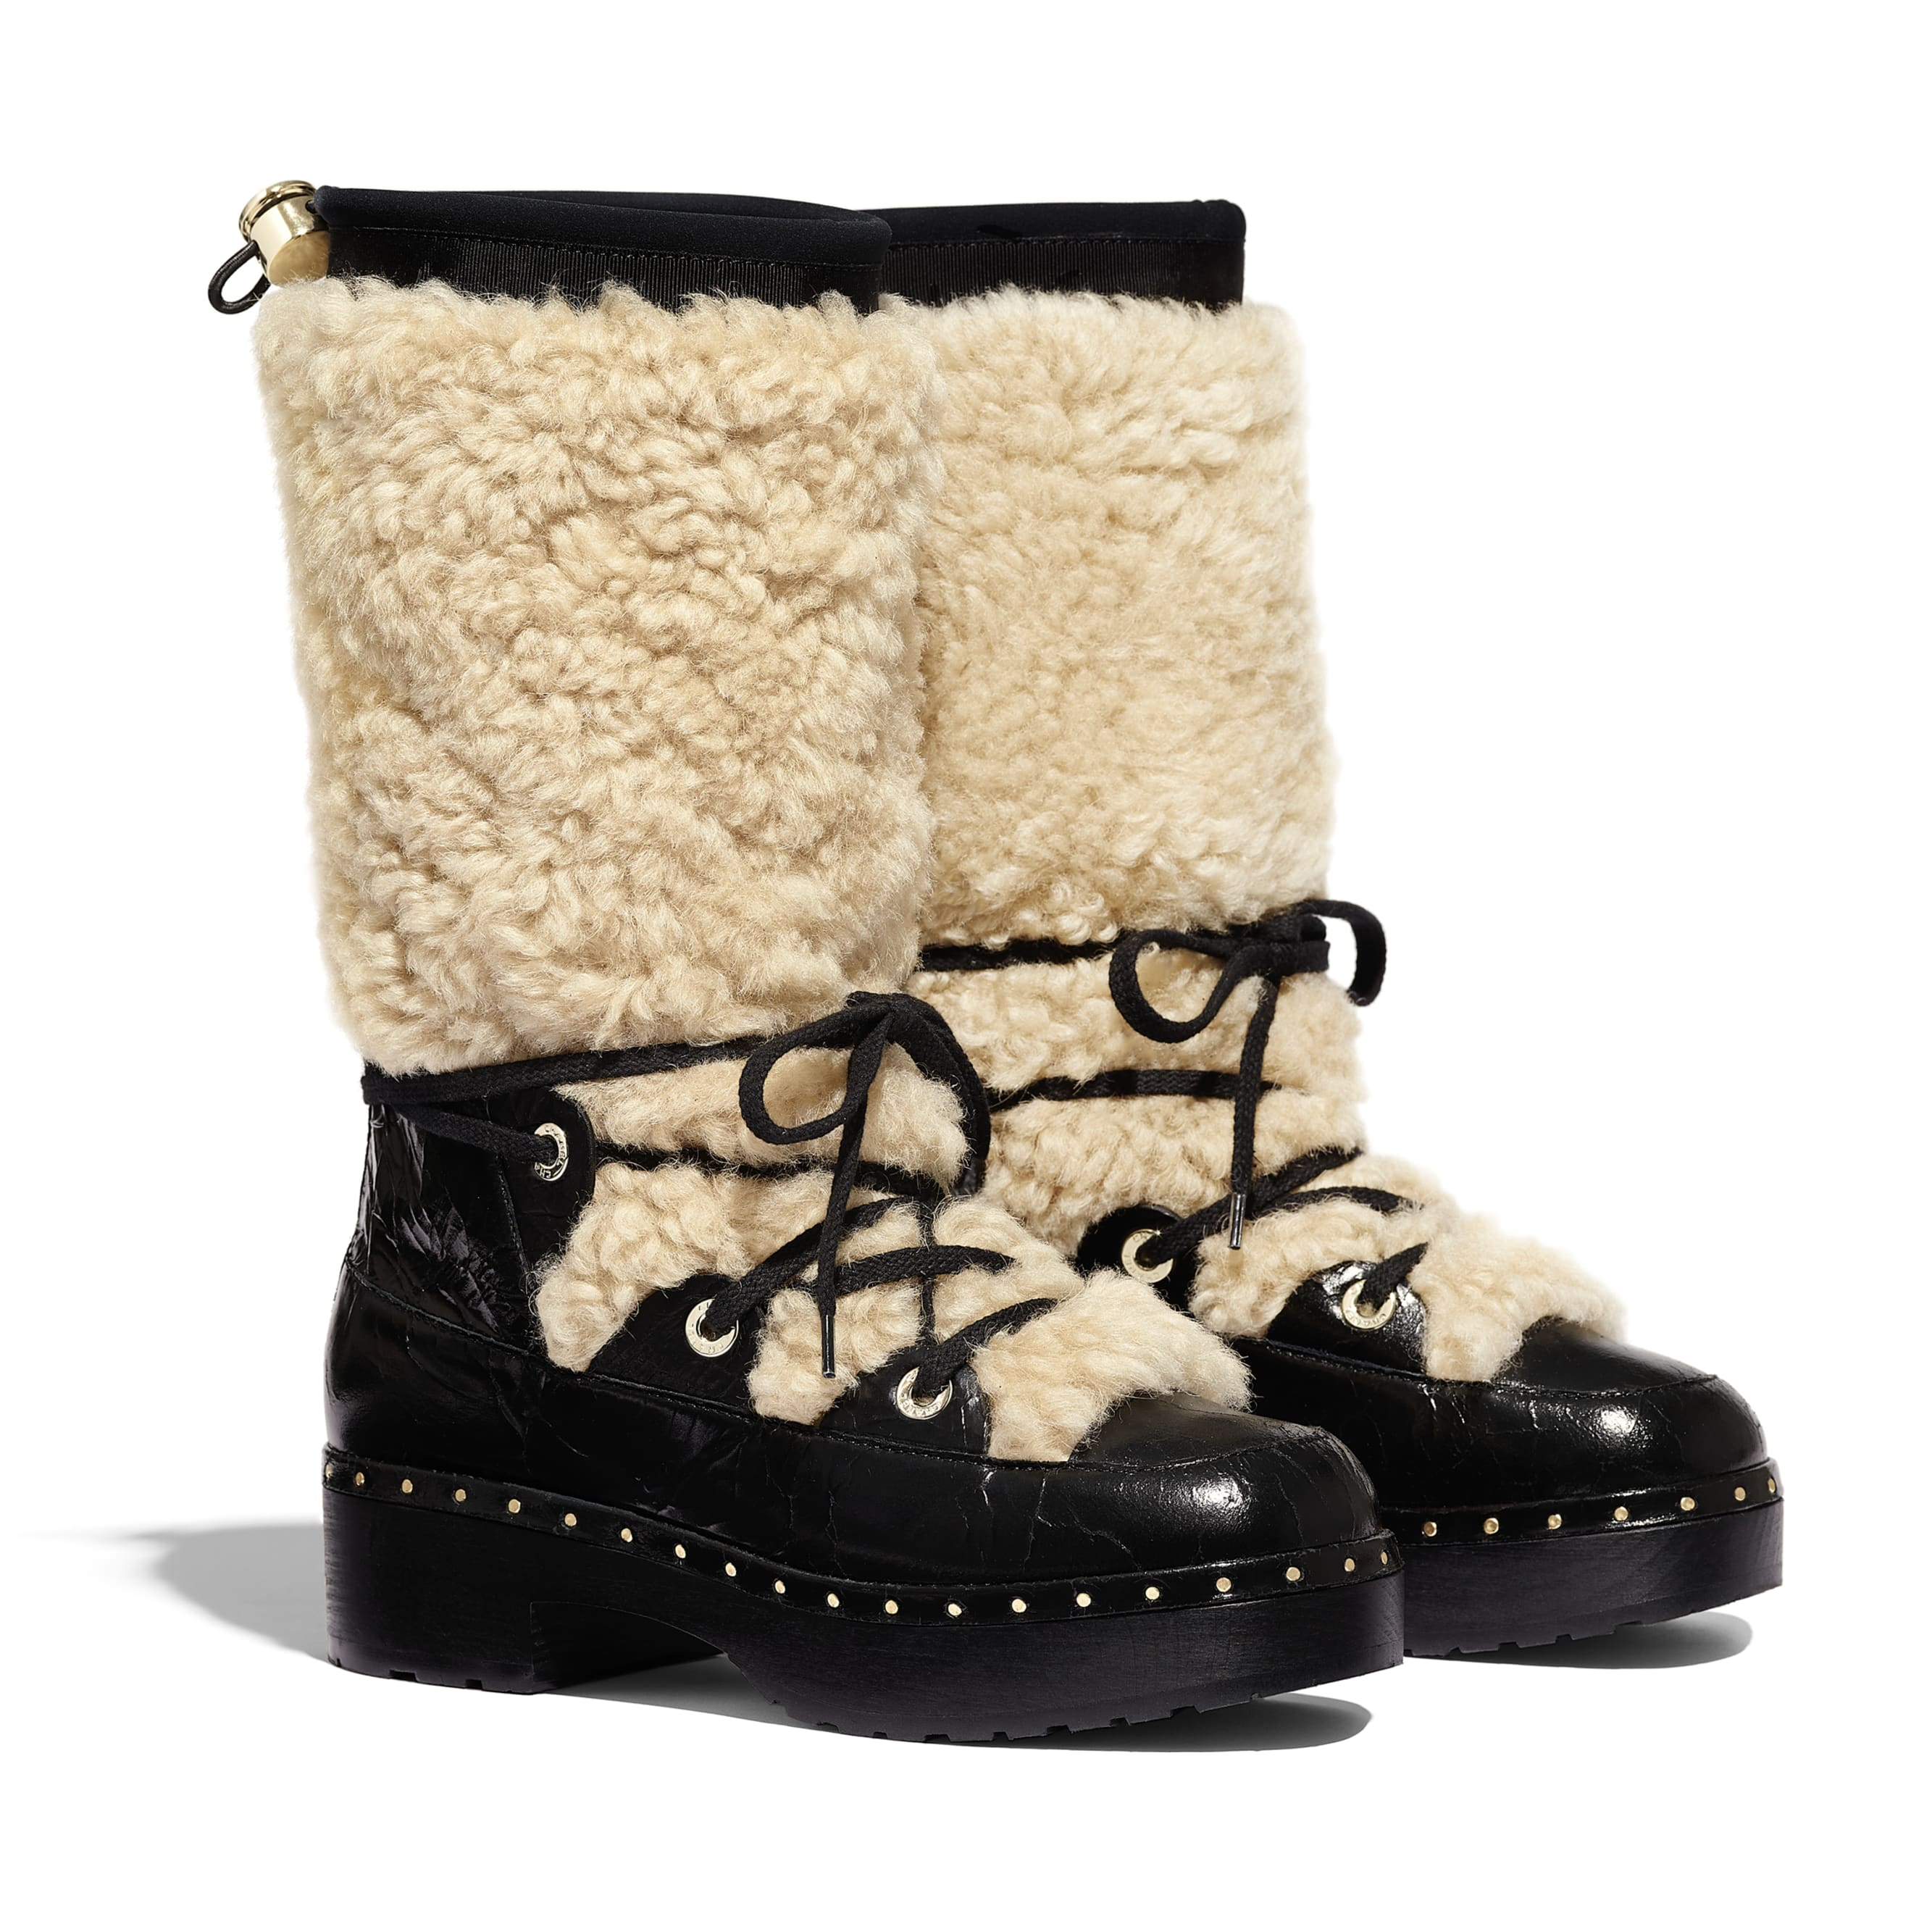 High Boots - Beige & Black - Shearling & Crackled Sheepskin - Alternative view - see standard sized version